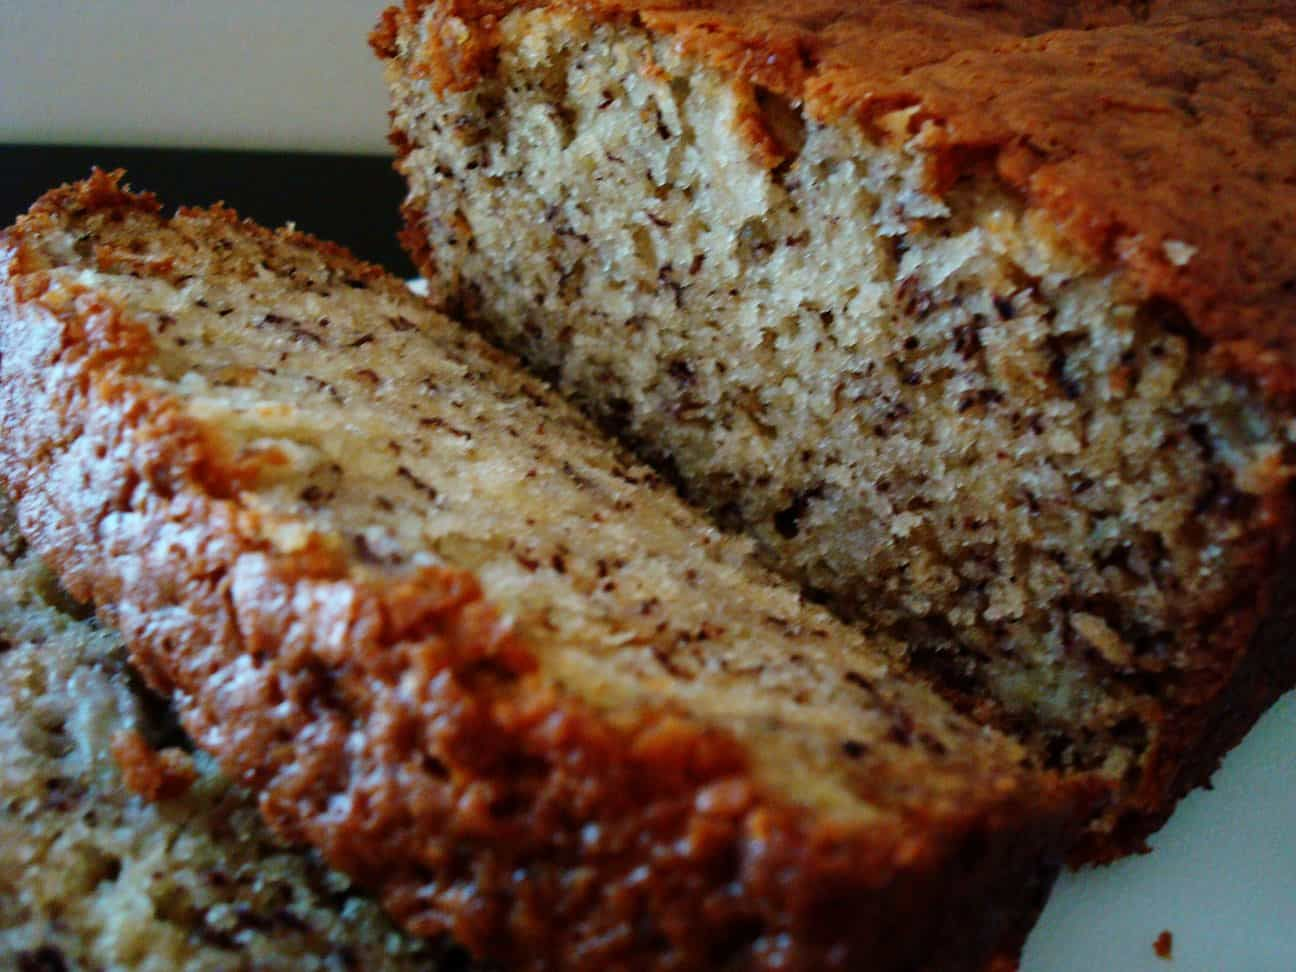 Sour Cream Banana Bread Recipe With Images Sour Cream Banana Bread Banana Recipes Sour Cream Recipes